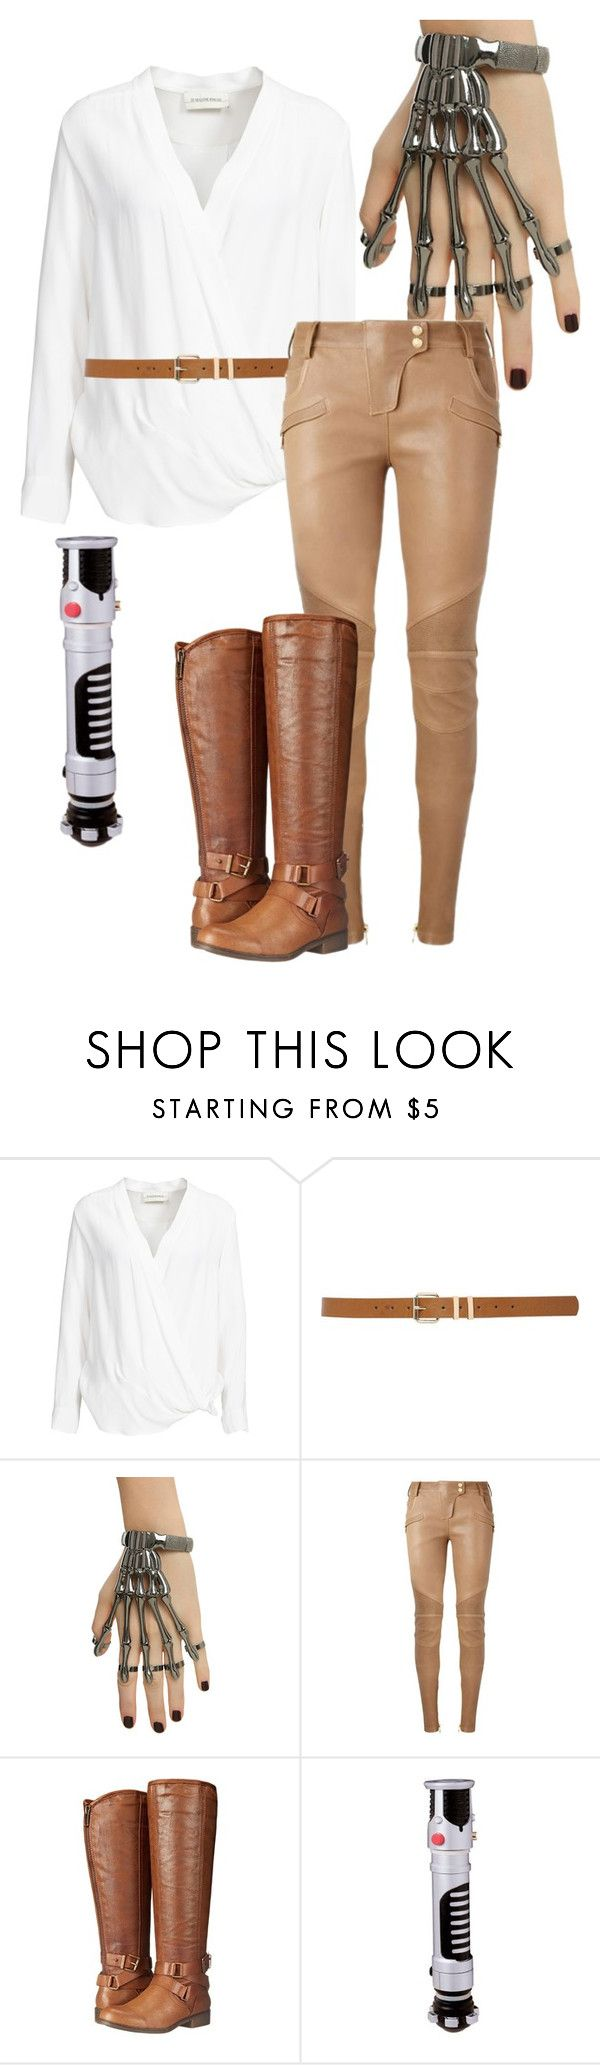 """Luke Skywalker"" by alaska1025 ❤ liked on Polyvore featuring By Malene Birger, M&Co, Balmain, Madden Girl and Rubie's Costume Co."